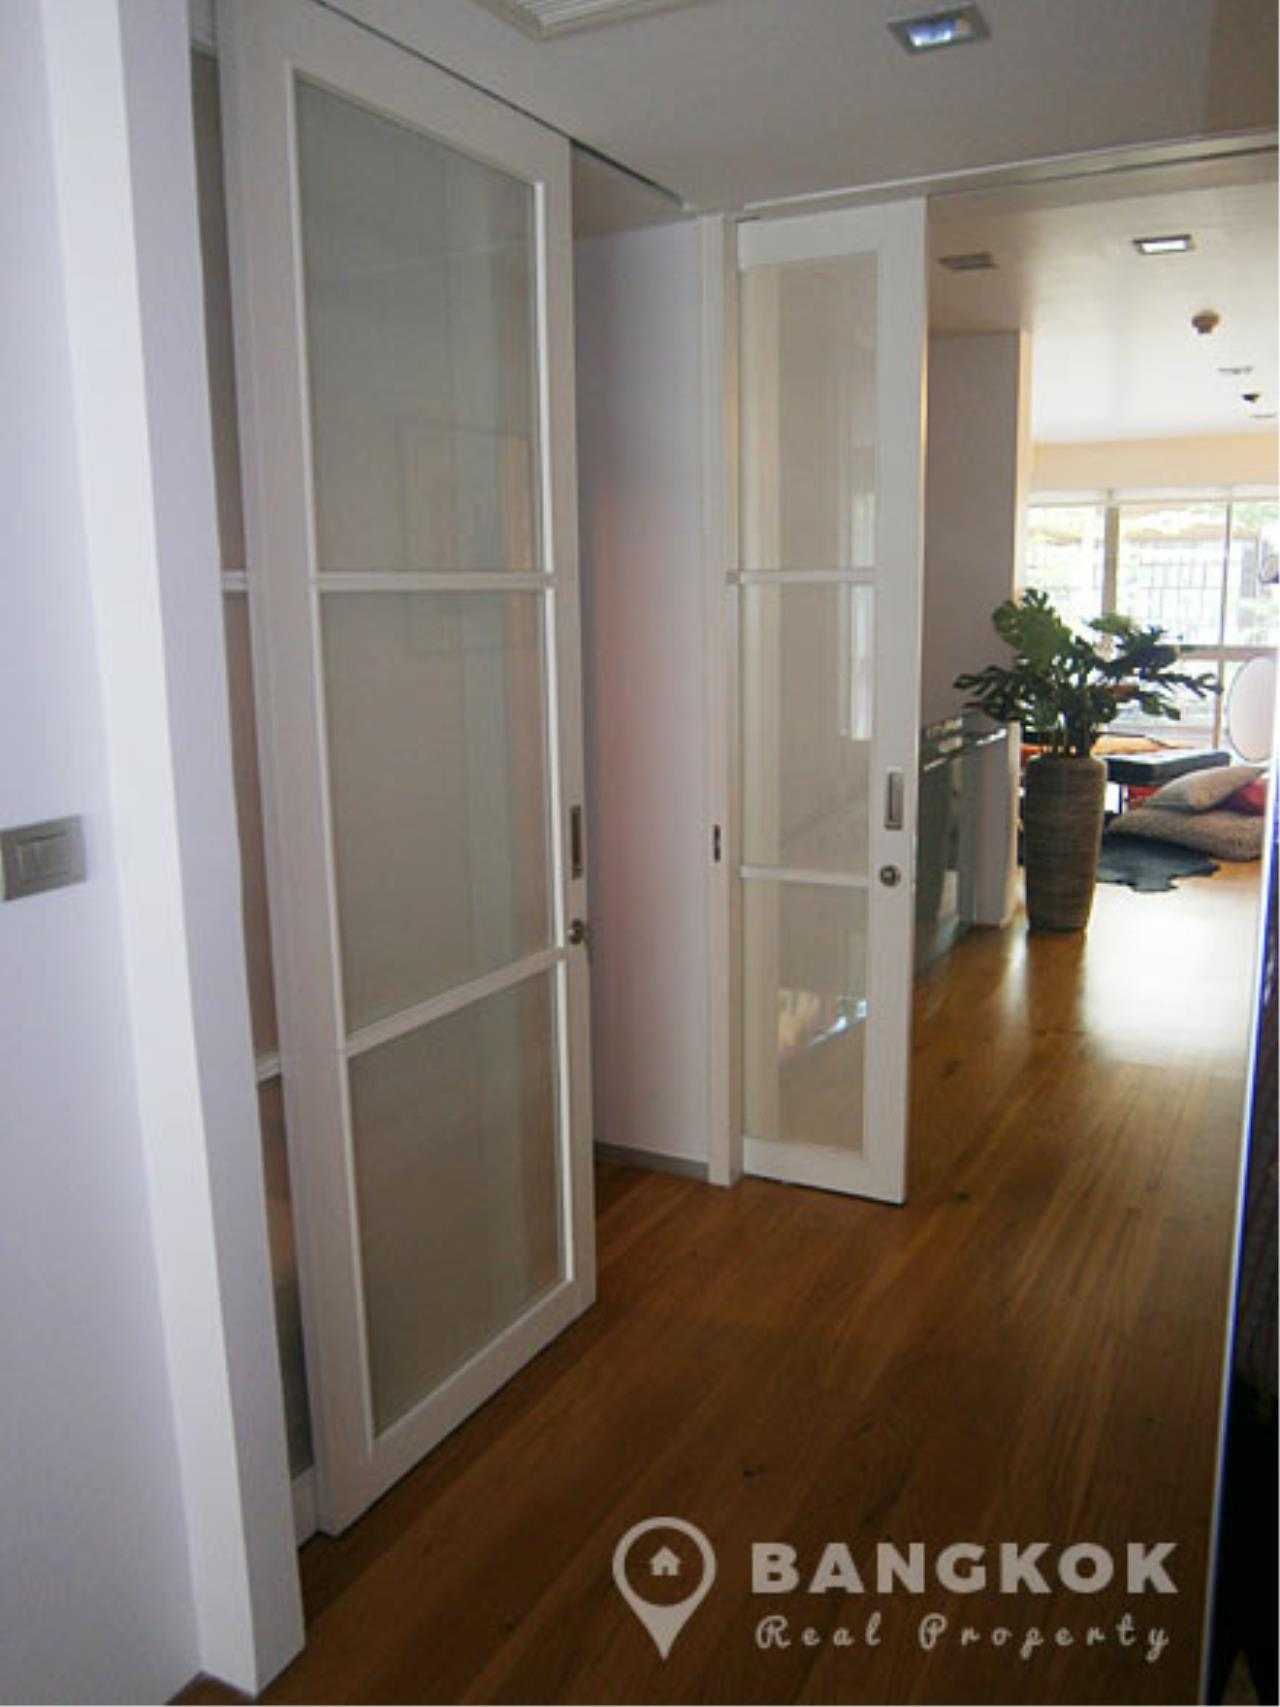 Bangkok Real Property Agency's Ficus Lane | A Fabulous Spacious 3 Bed 4 Bath Duplex near BTS 23